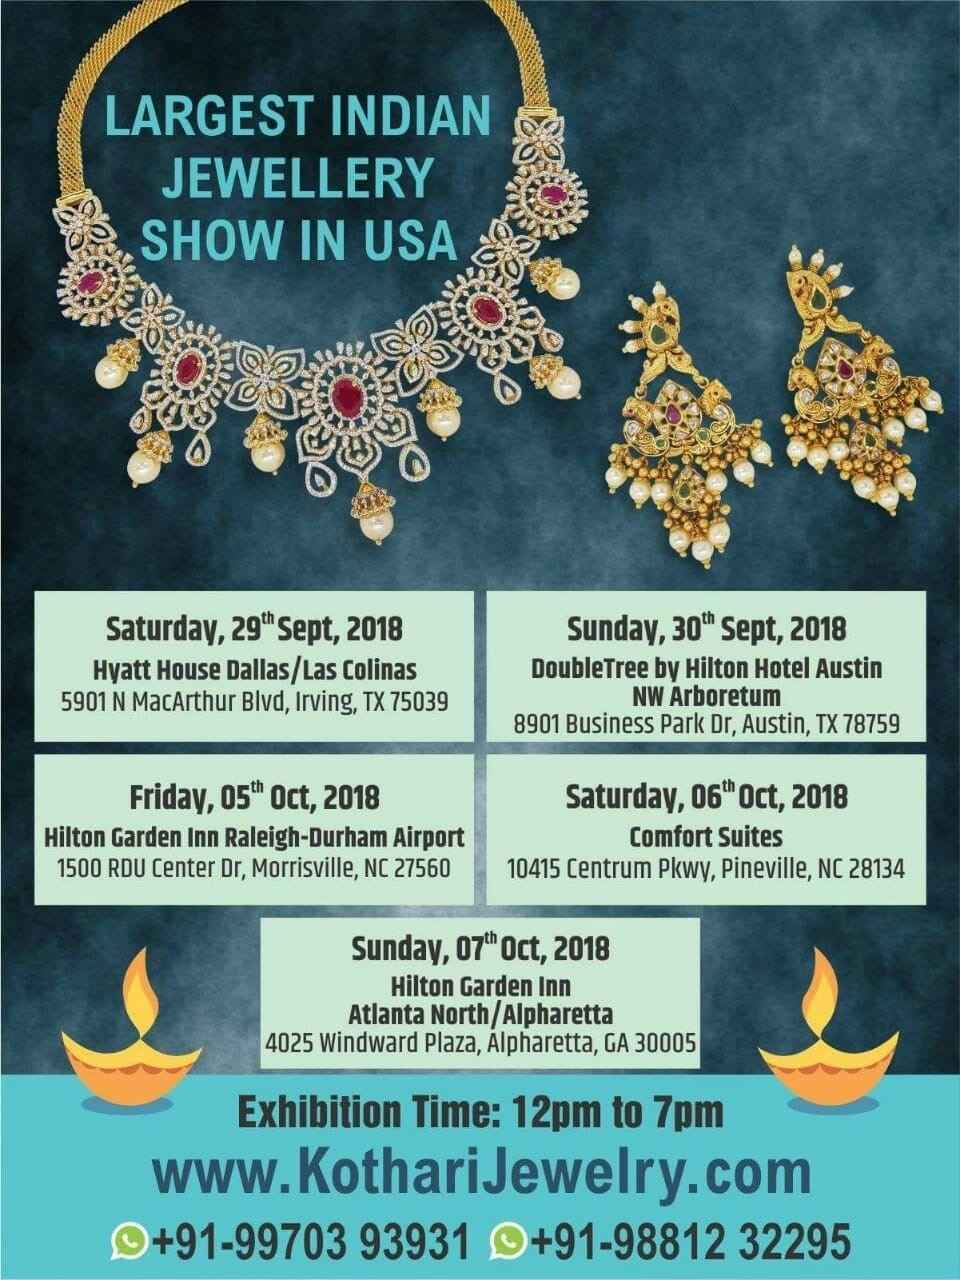 LARGEST INDIAN JEWELLERY SHOW IN USA